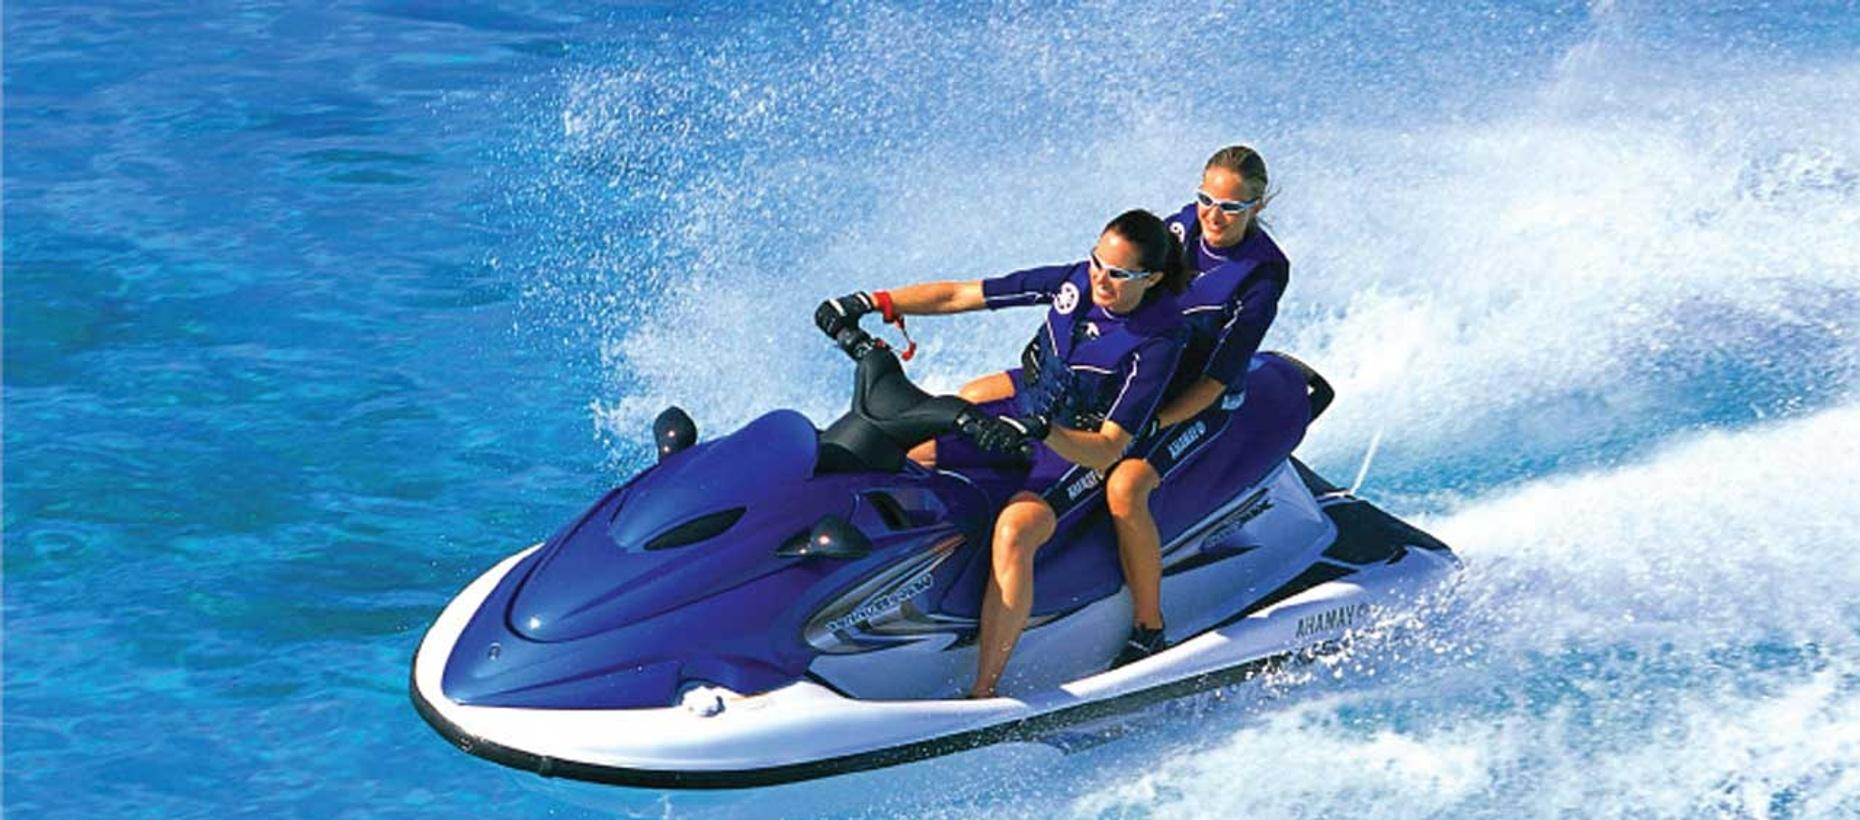 One-Hour Waverunner Rental in Palm Beach